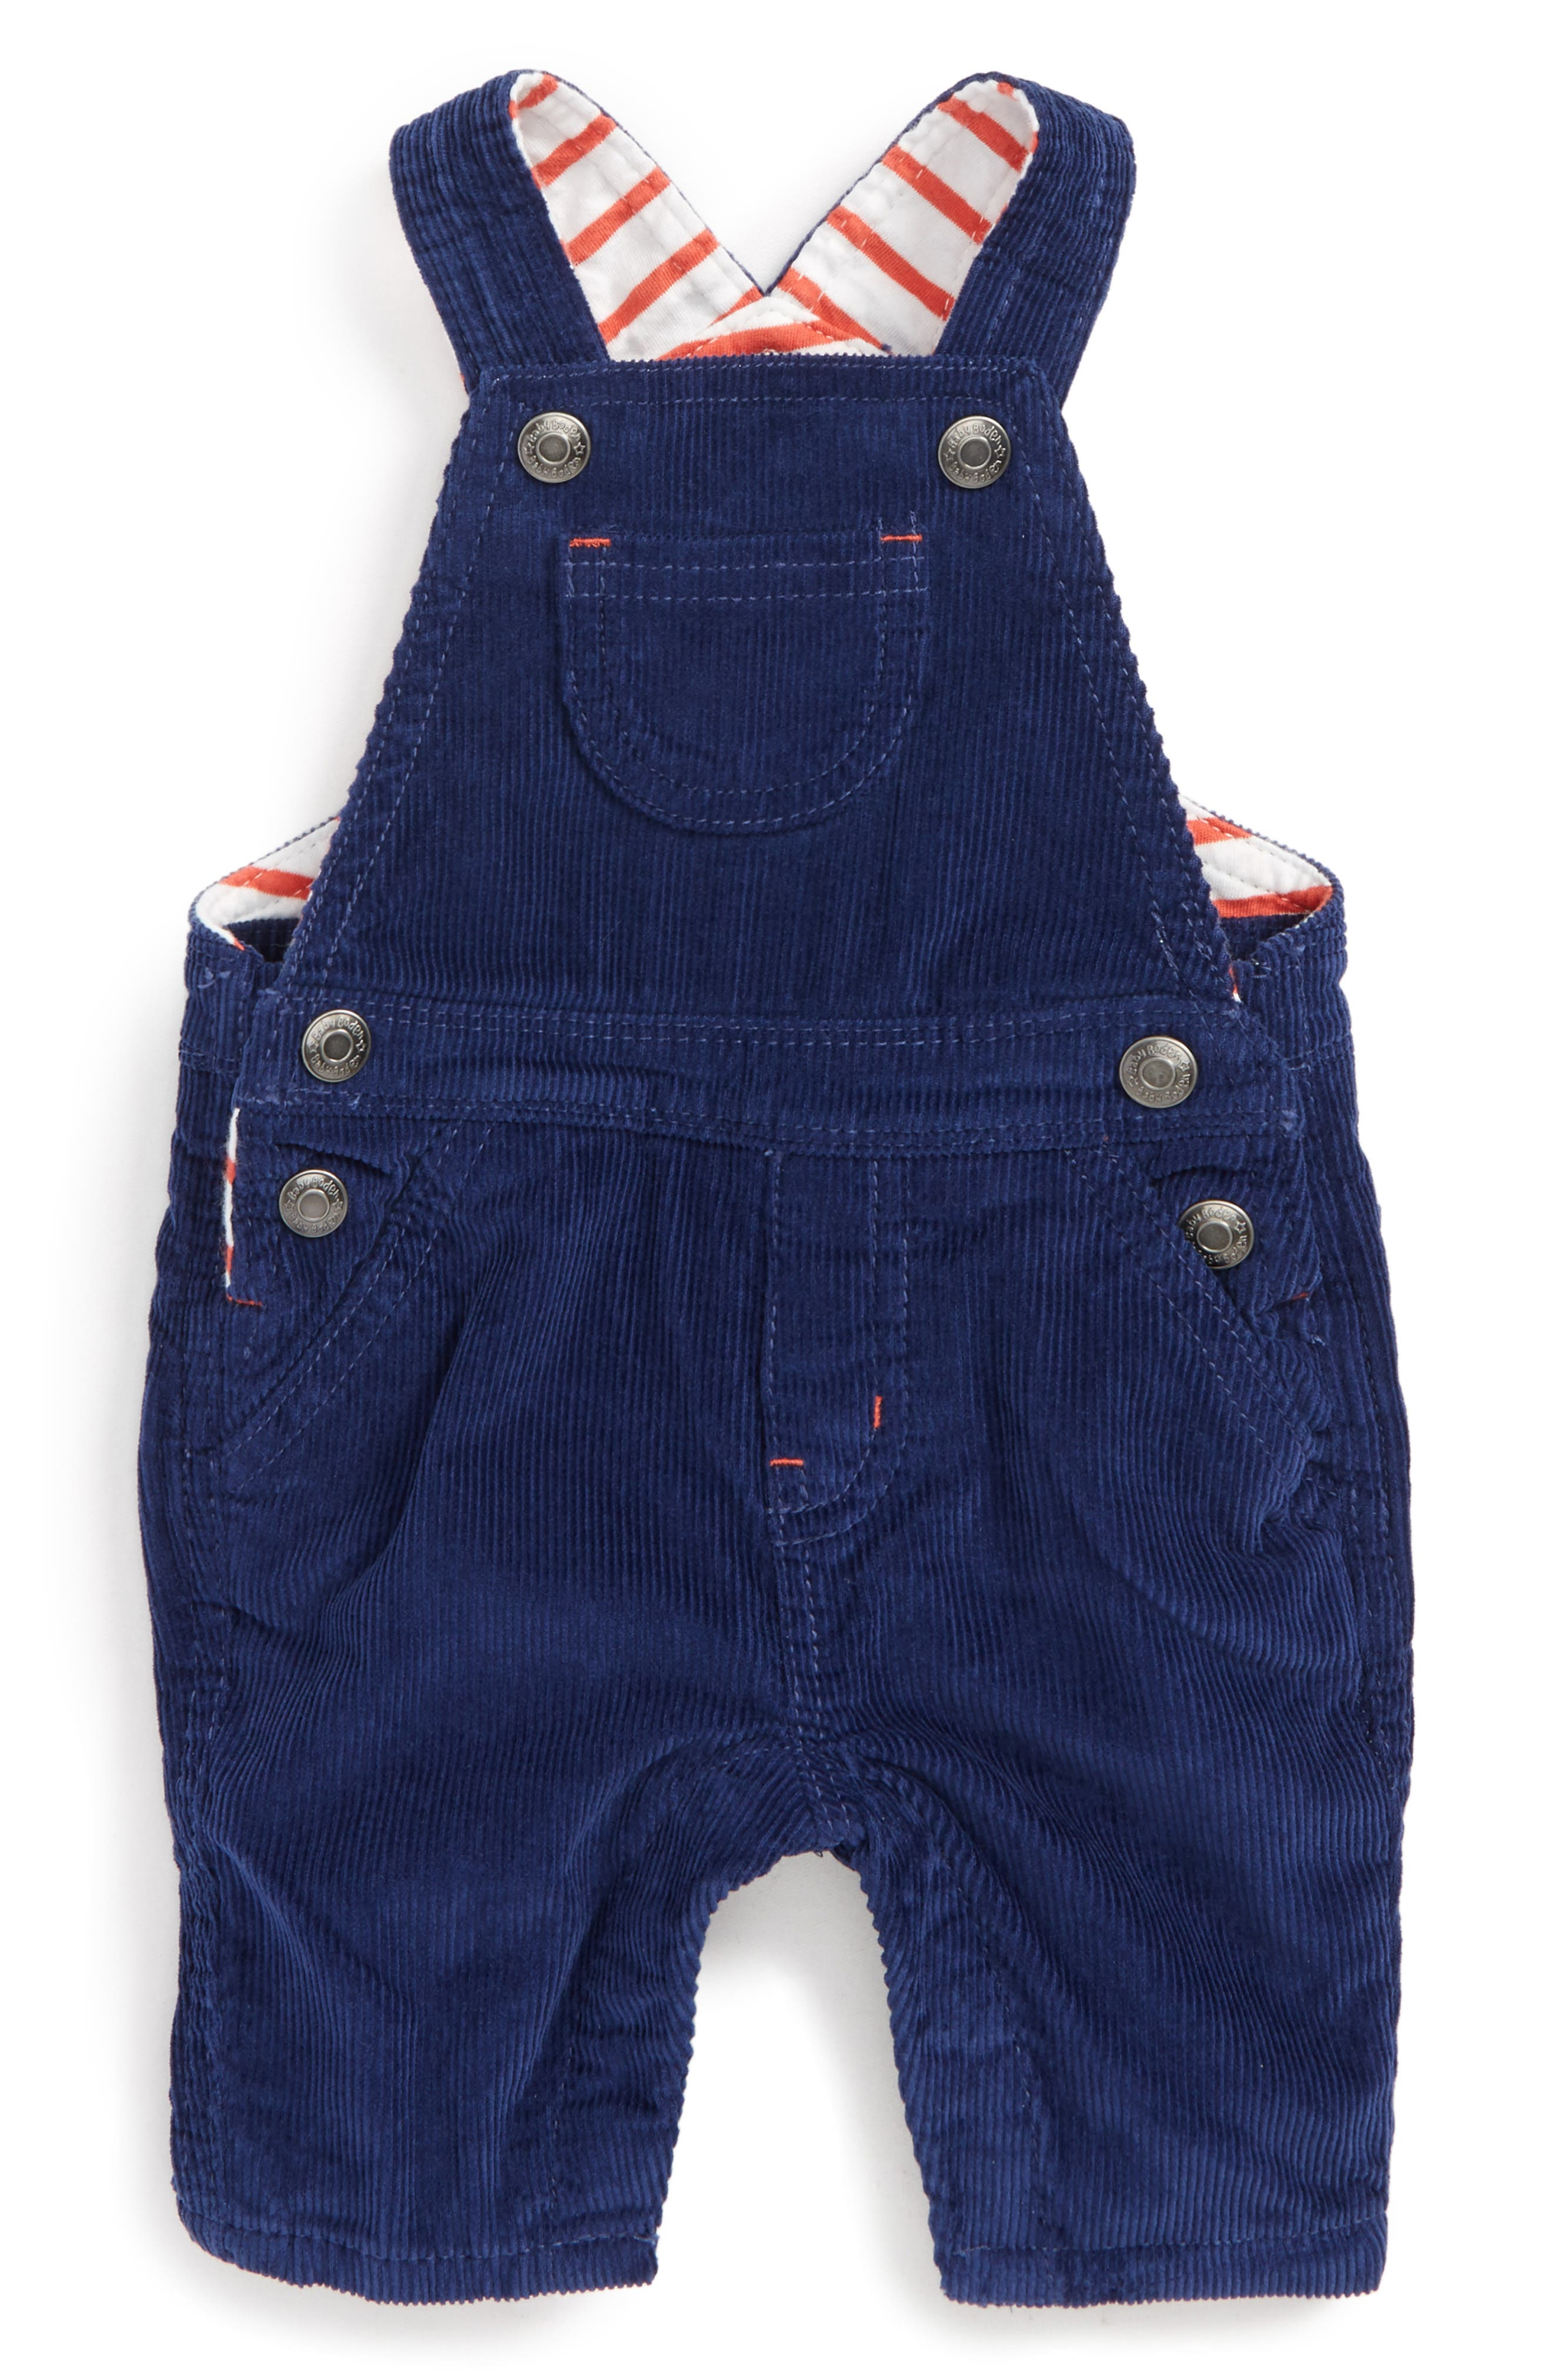 Mini Boden Classic Corduroy Overalls (Baby Boys & Toddler Boys)